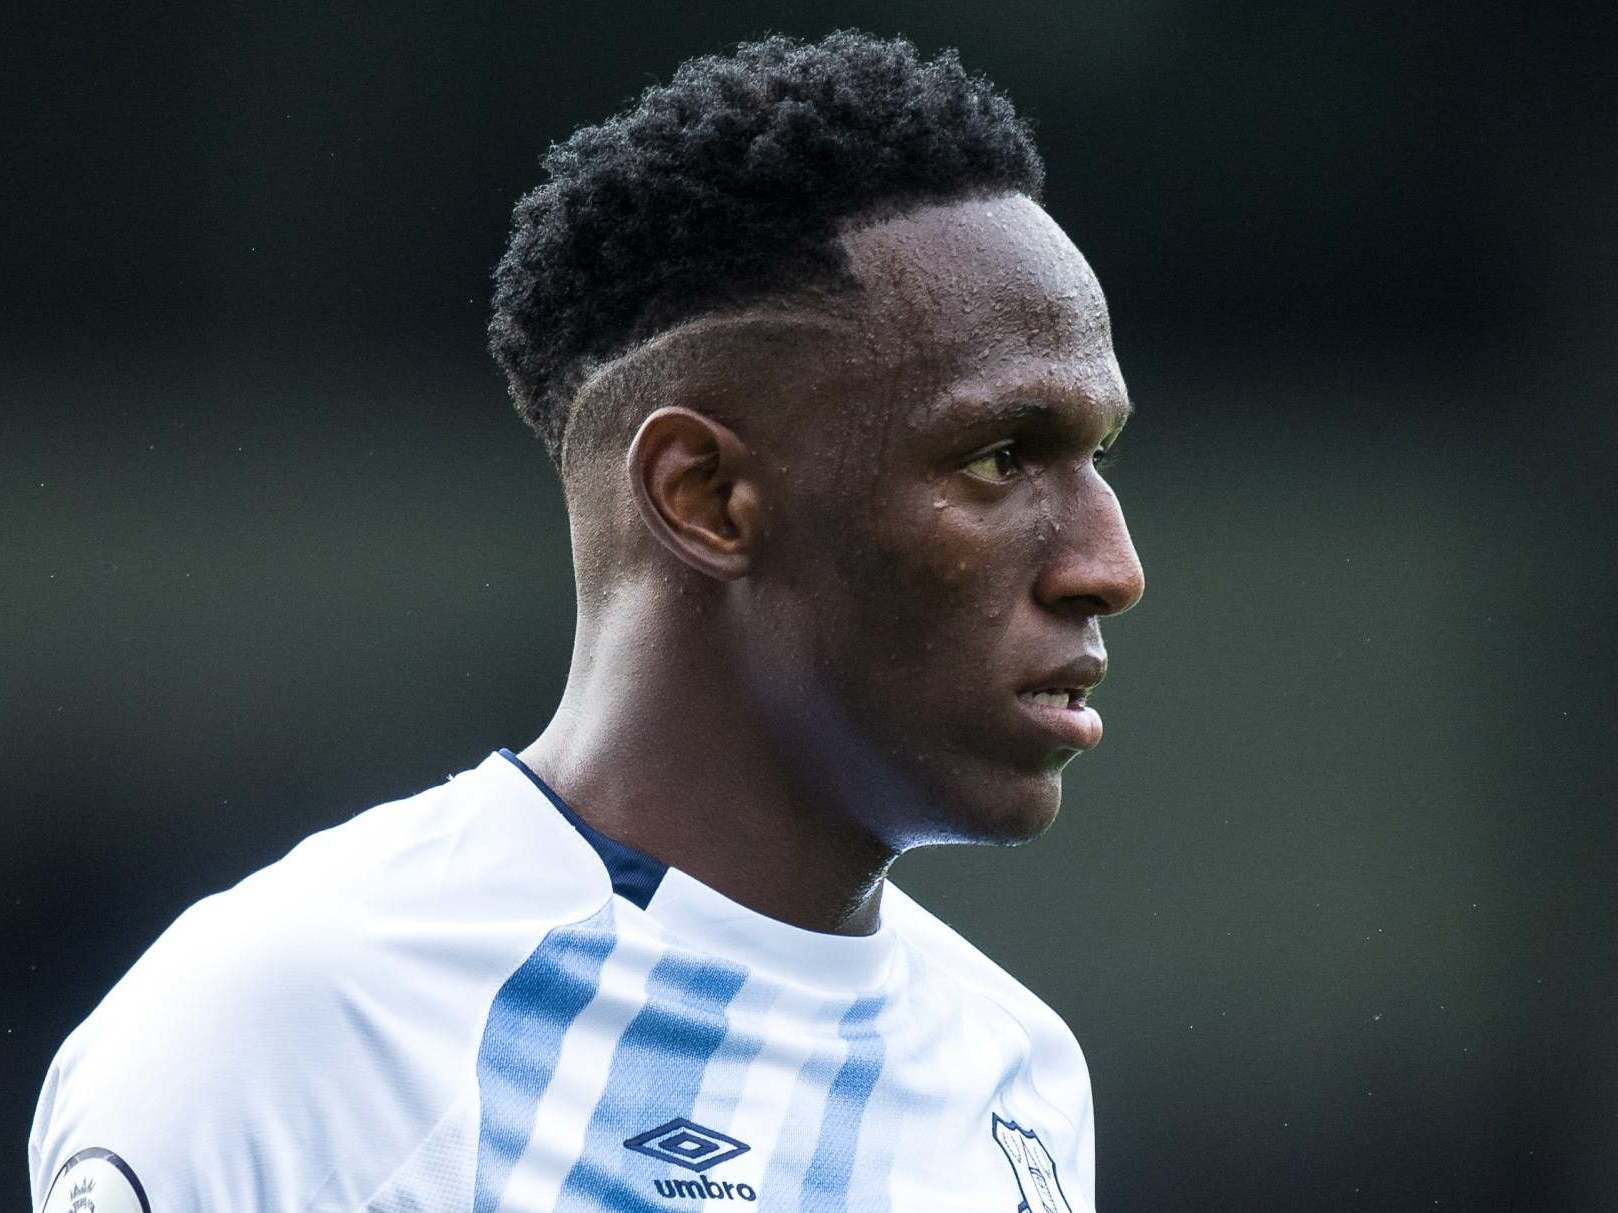 Everton news: Yerry Mina 'playing his best football' after overcoming streak of injuries